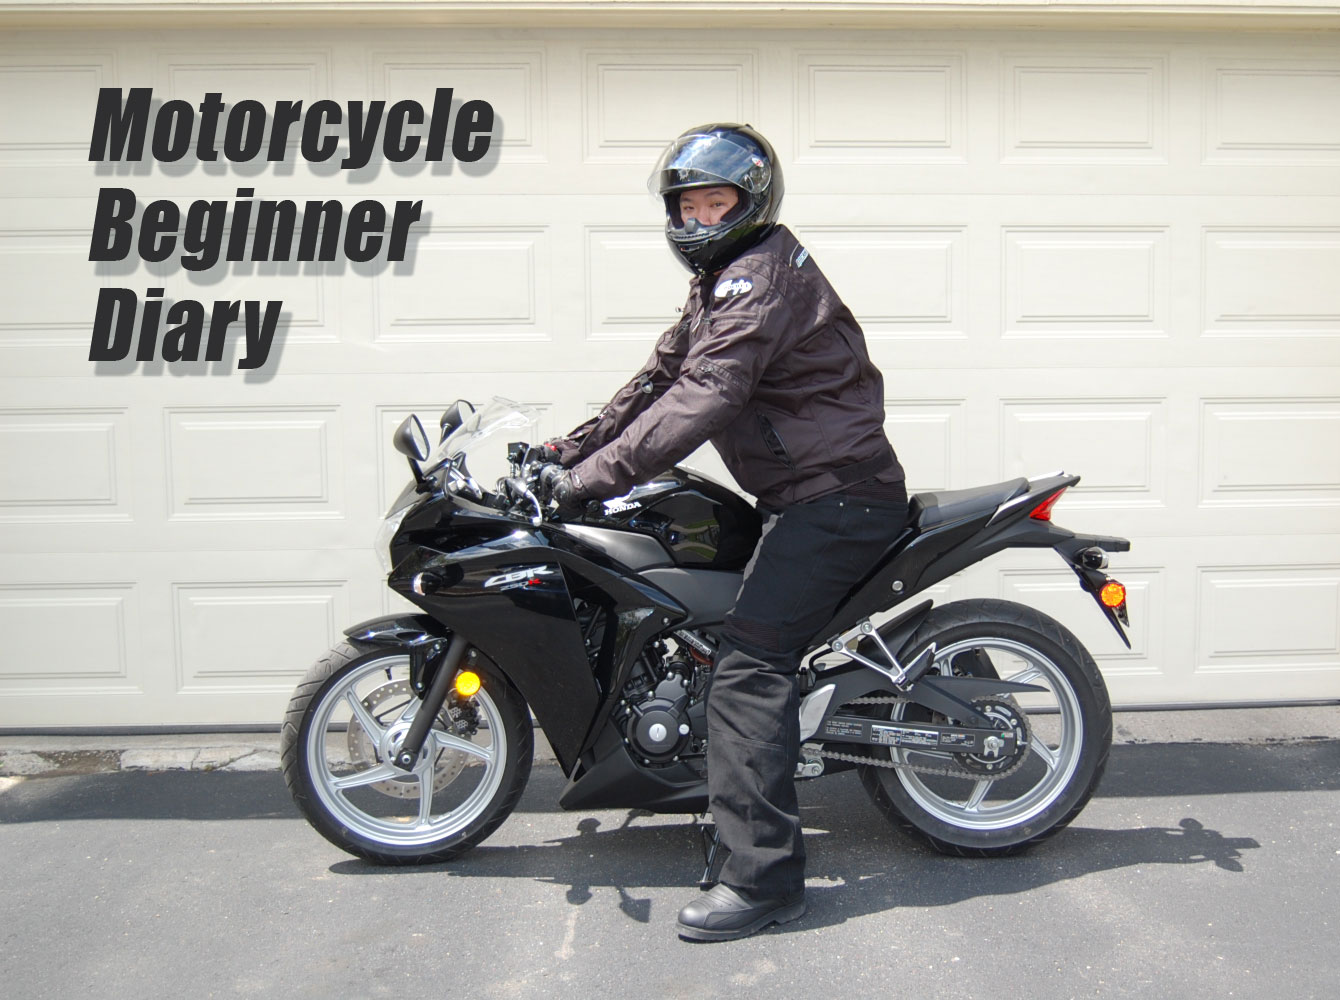 060611-motorcycle-beginner-diary